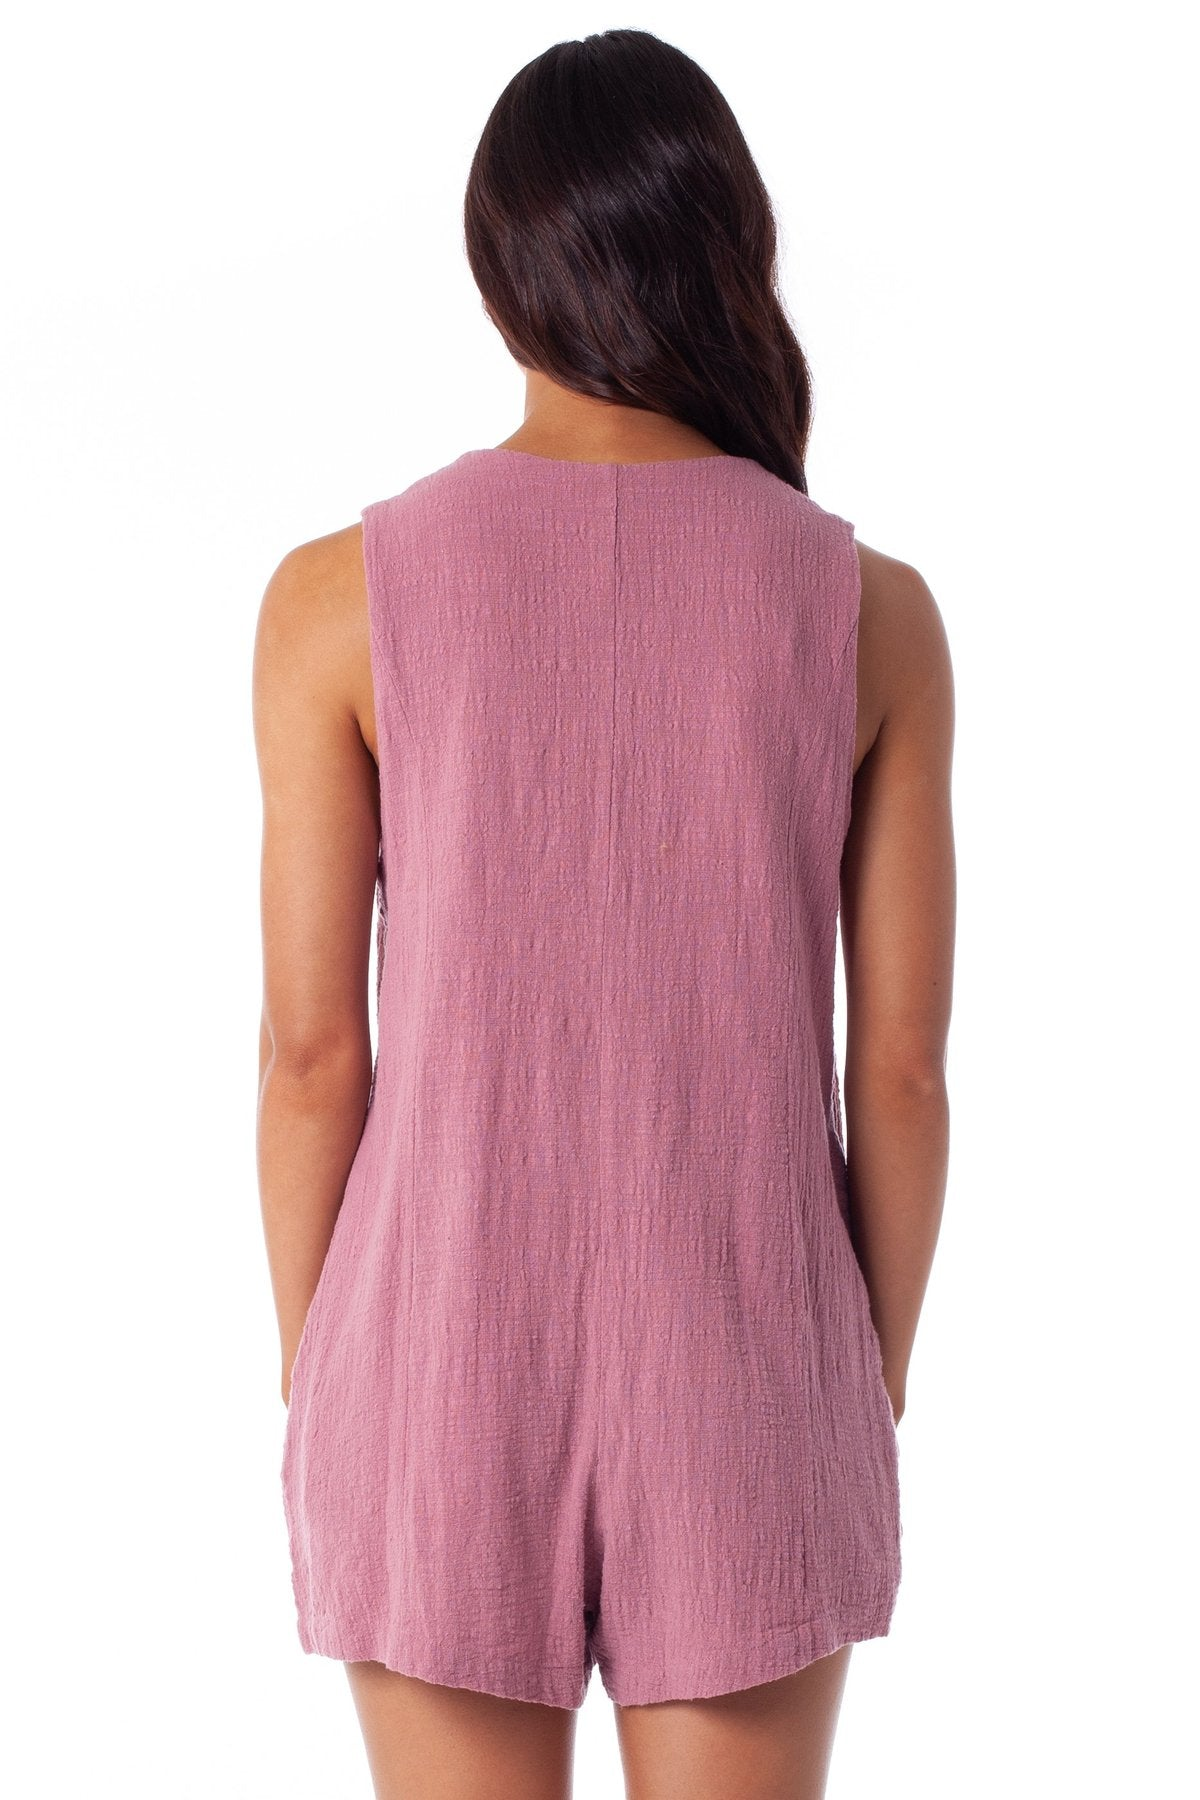 Sundown Romper - Mauve